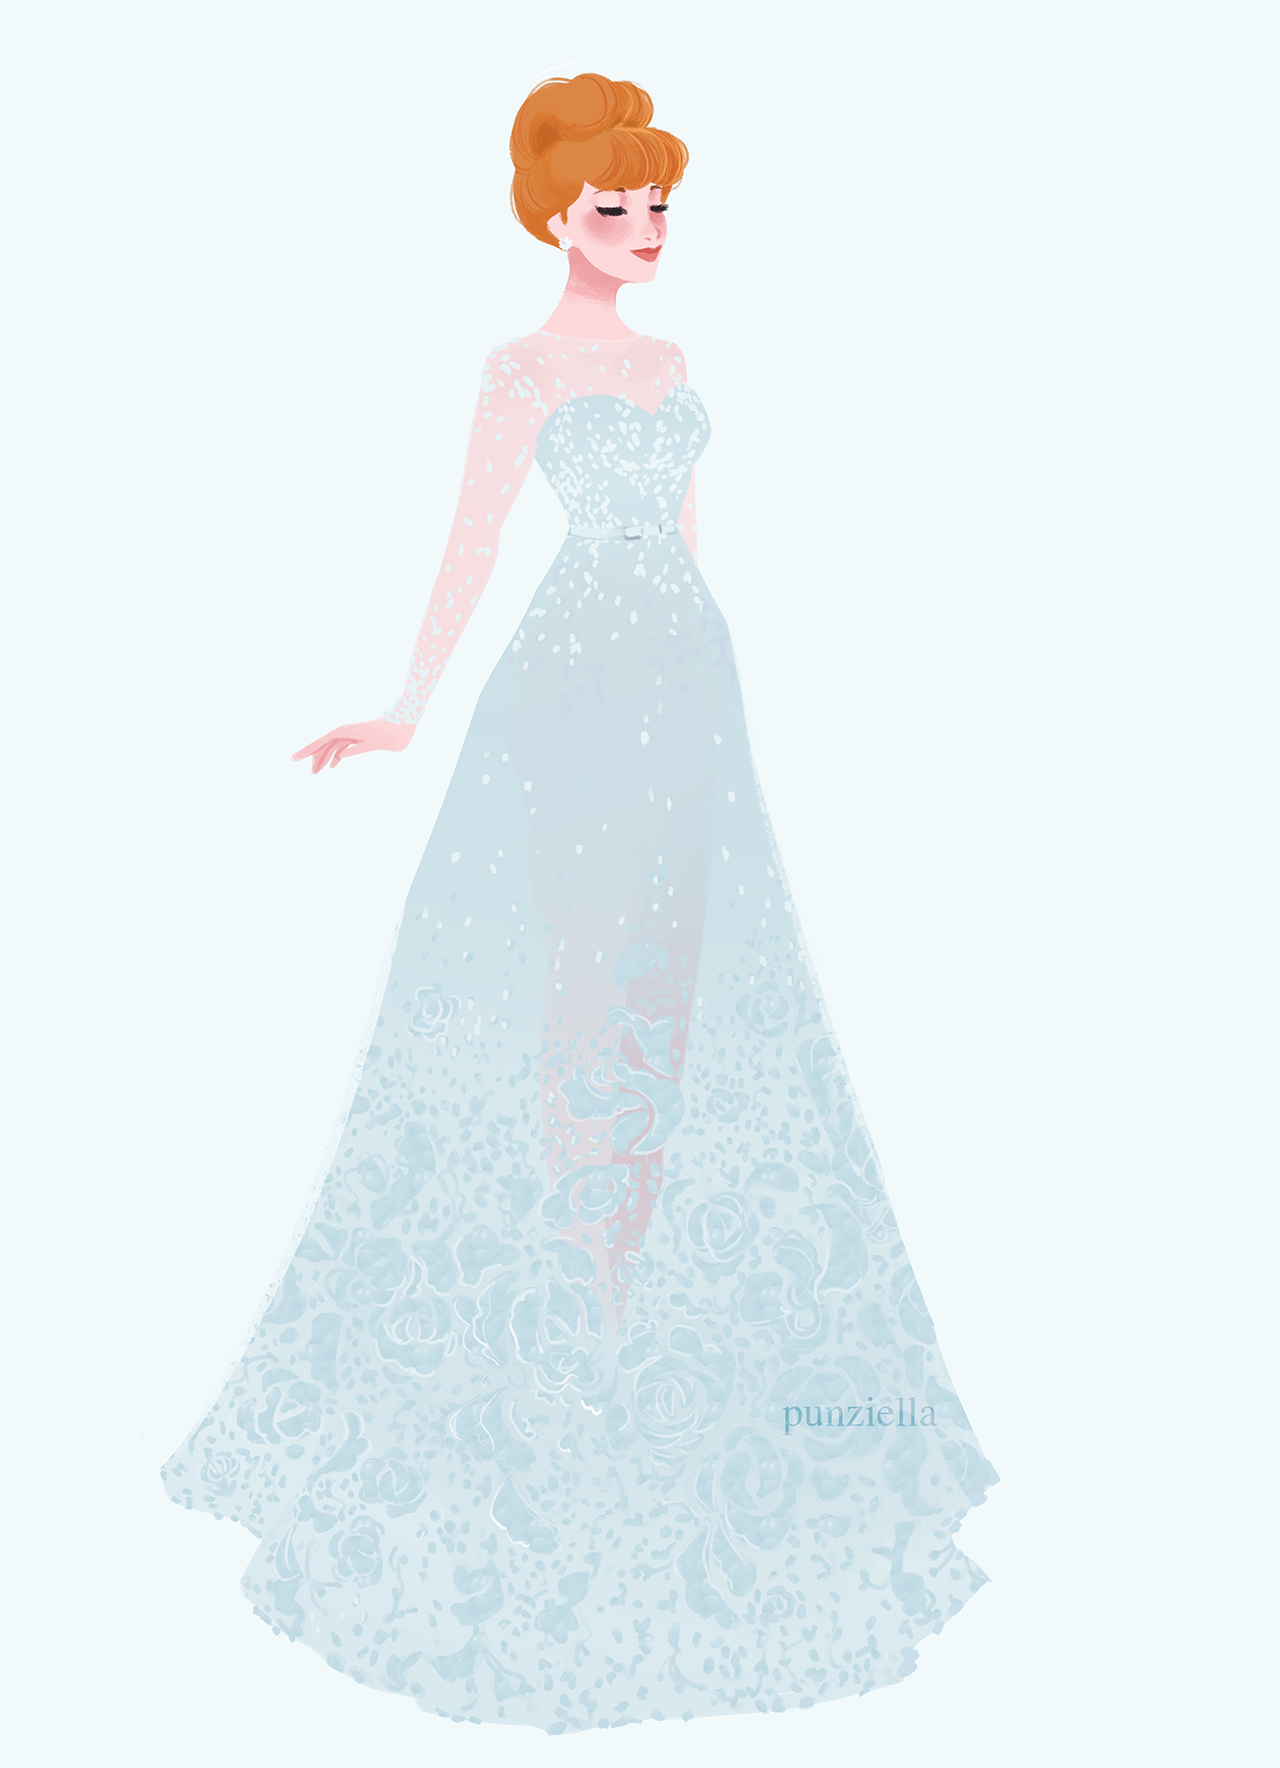 This Cinderella Modern Fairytale Gown Is Gorgeous I Would Die For One In Real Life This Is